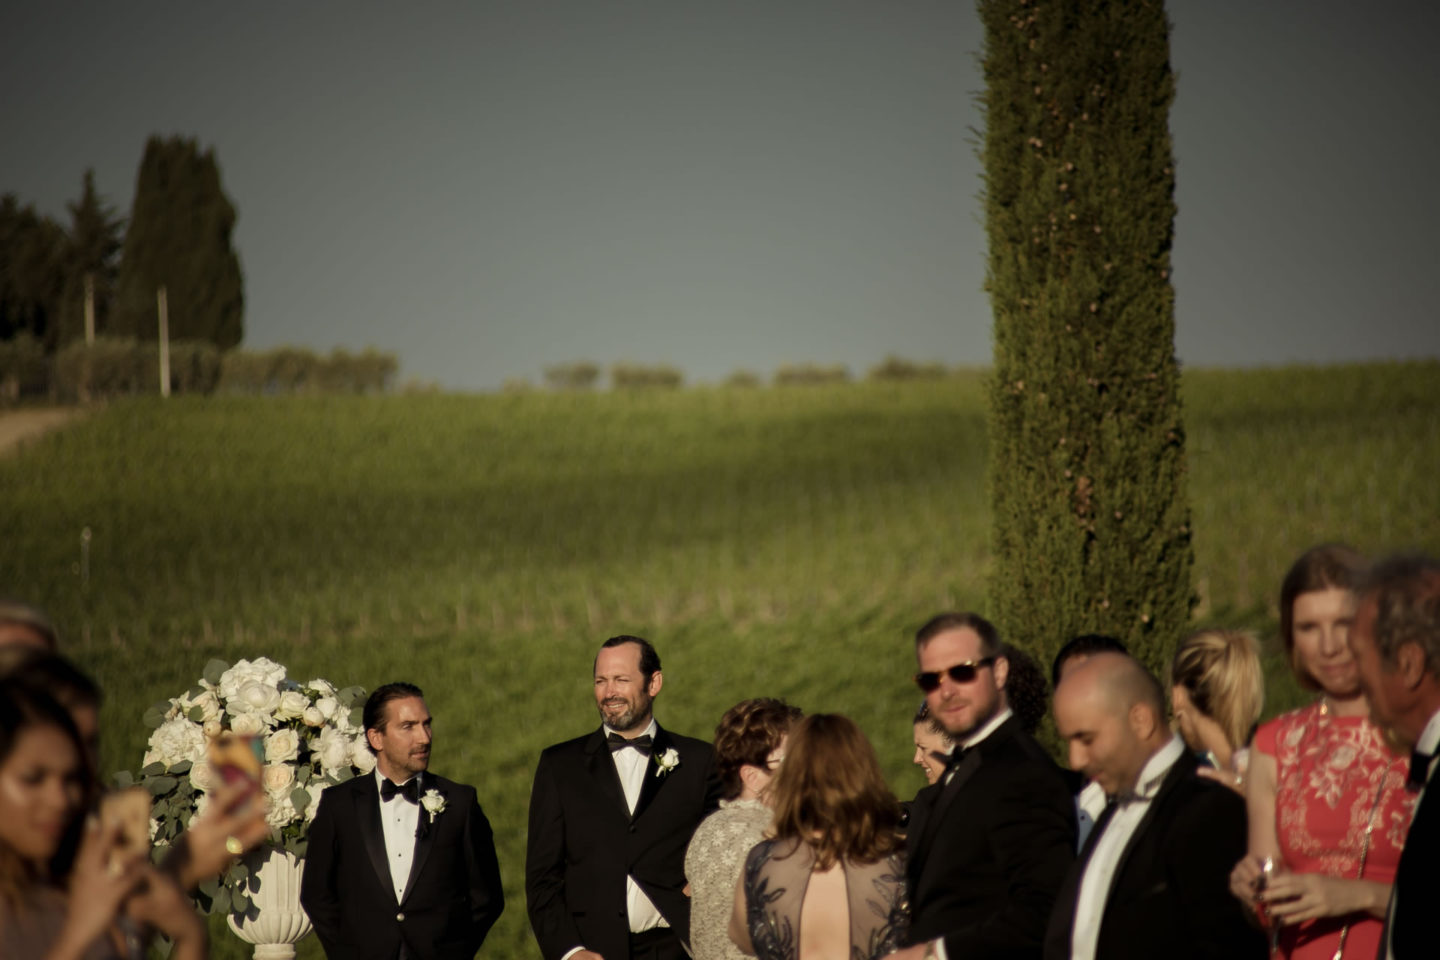 Waiting :: Exciting wedding in the countryside of Siena :: Luxury wedding photography - 32 :: Waiting